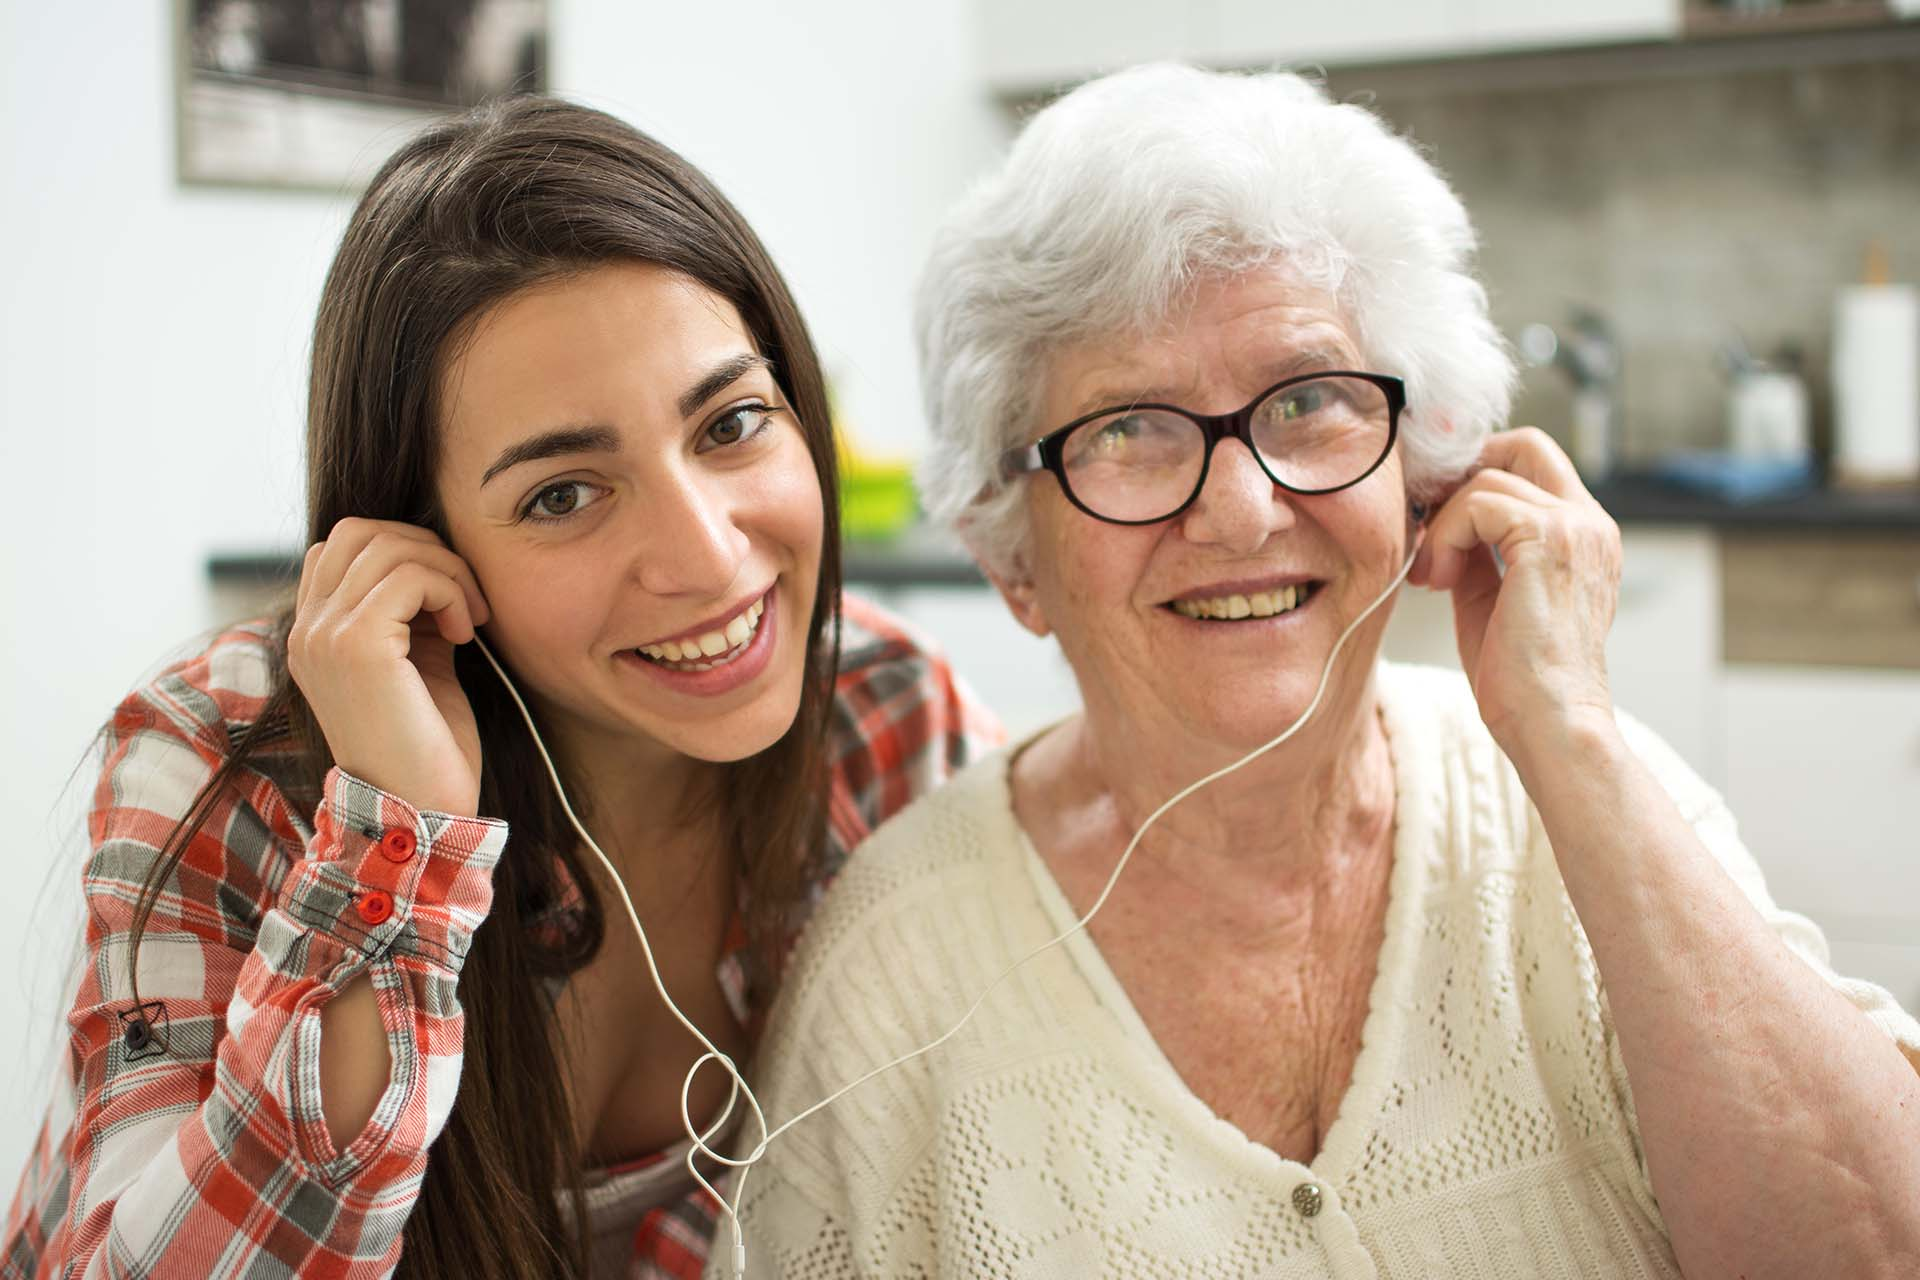 Girl and grandmother listening to music together